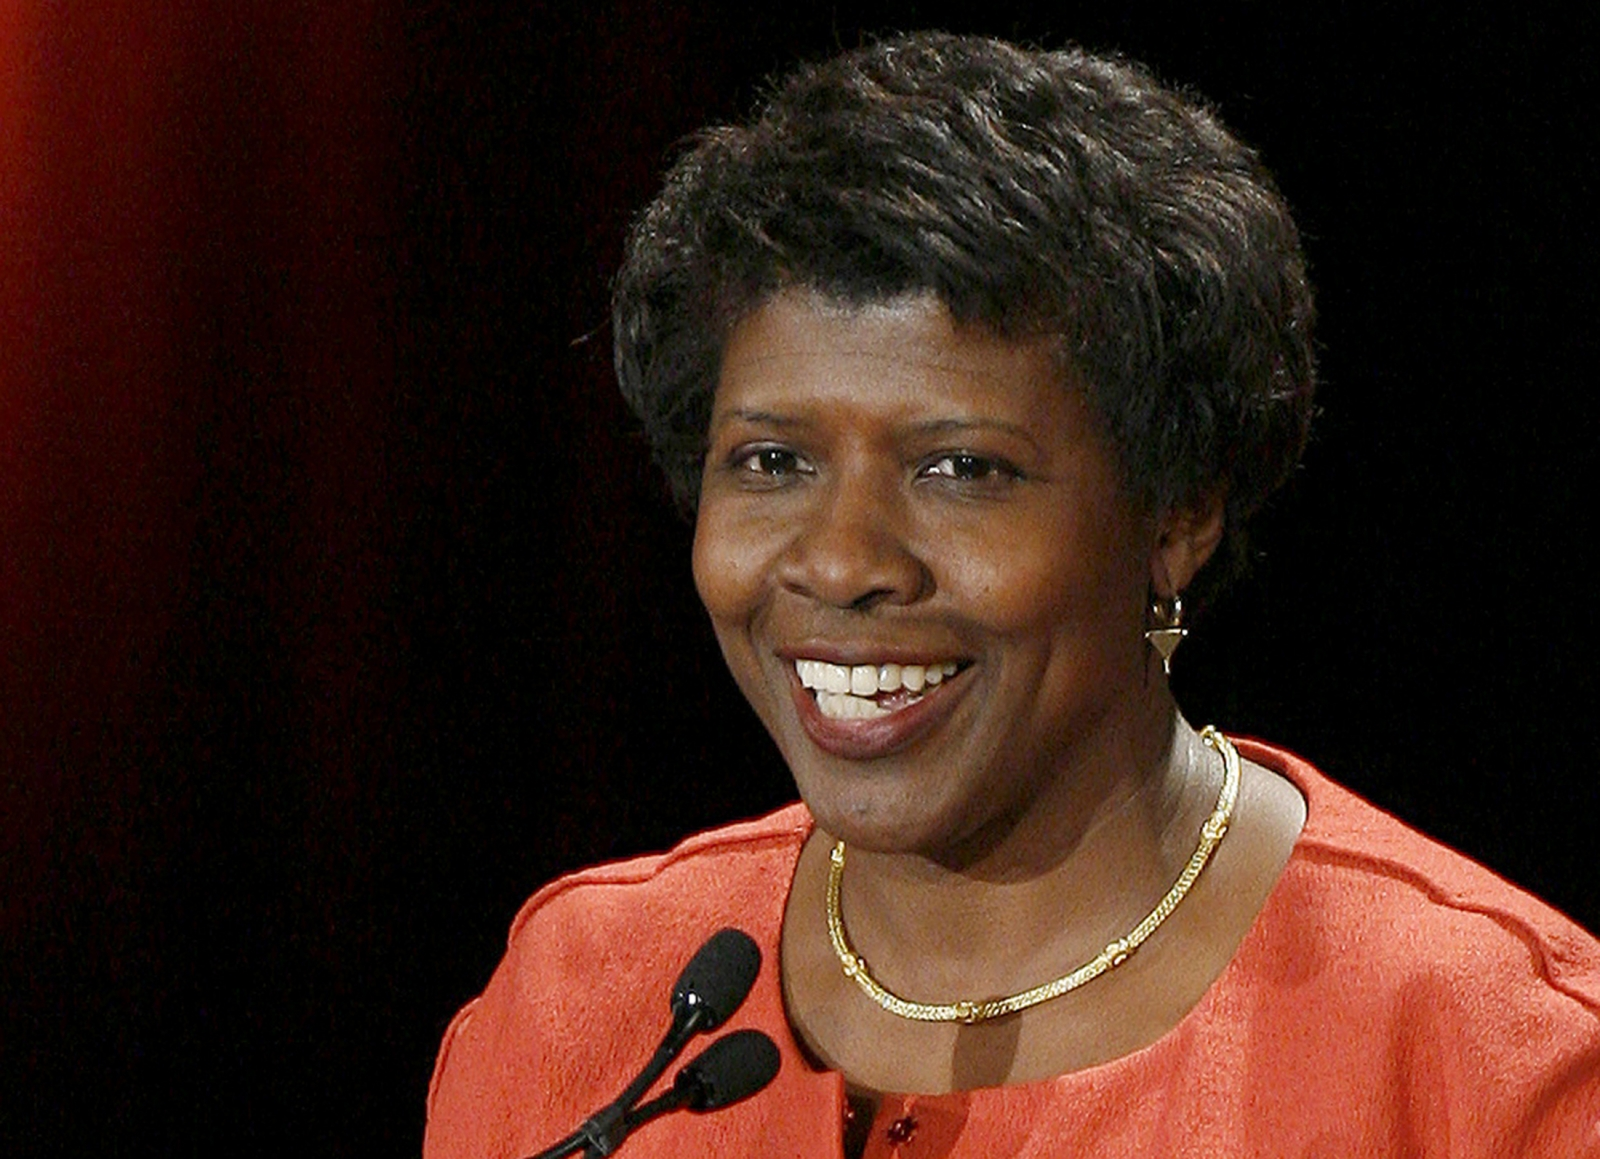 US journalist Gwen Ifill